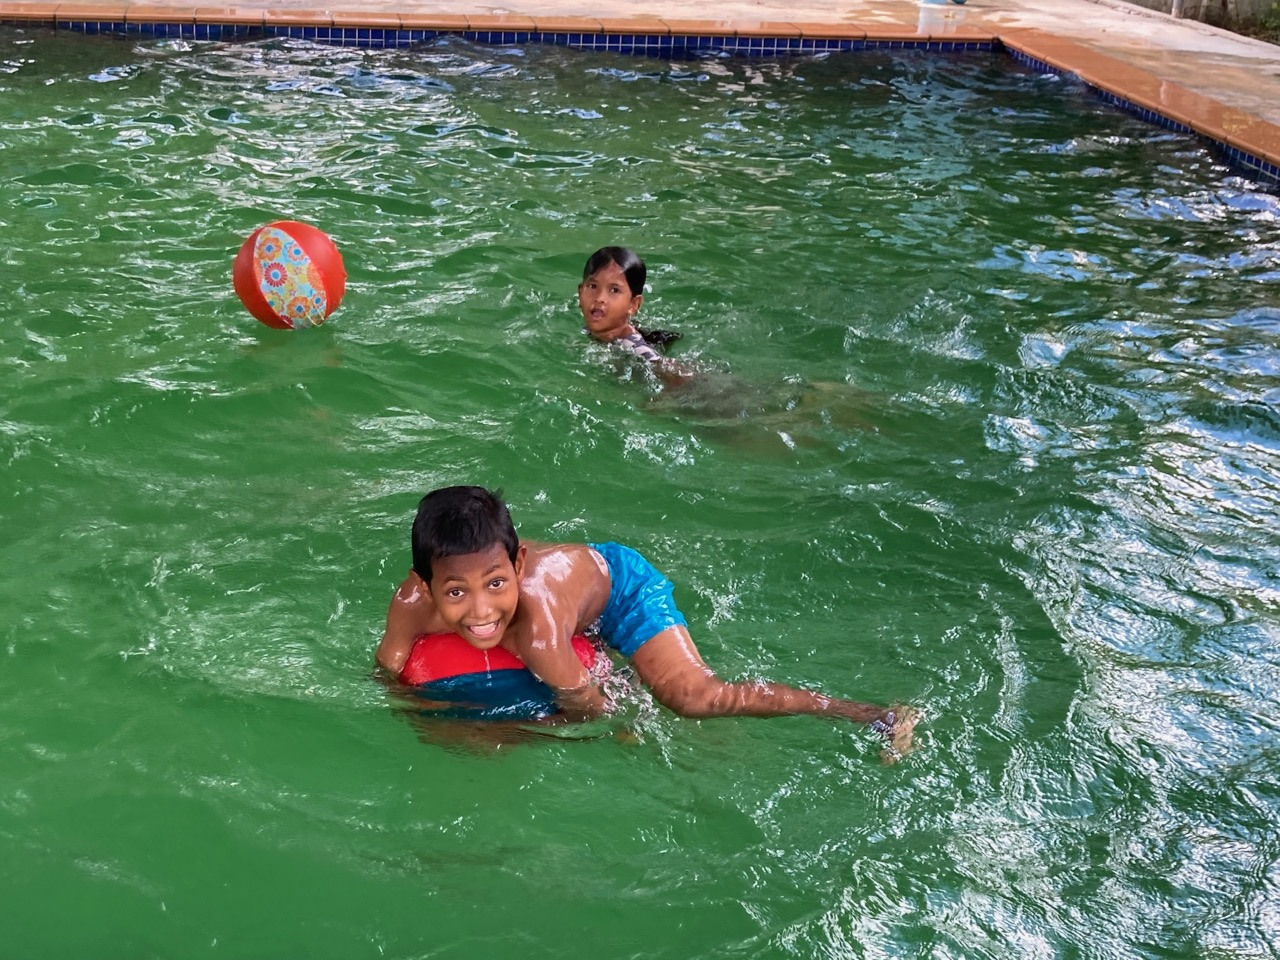 Baloon Balls in the pool30